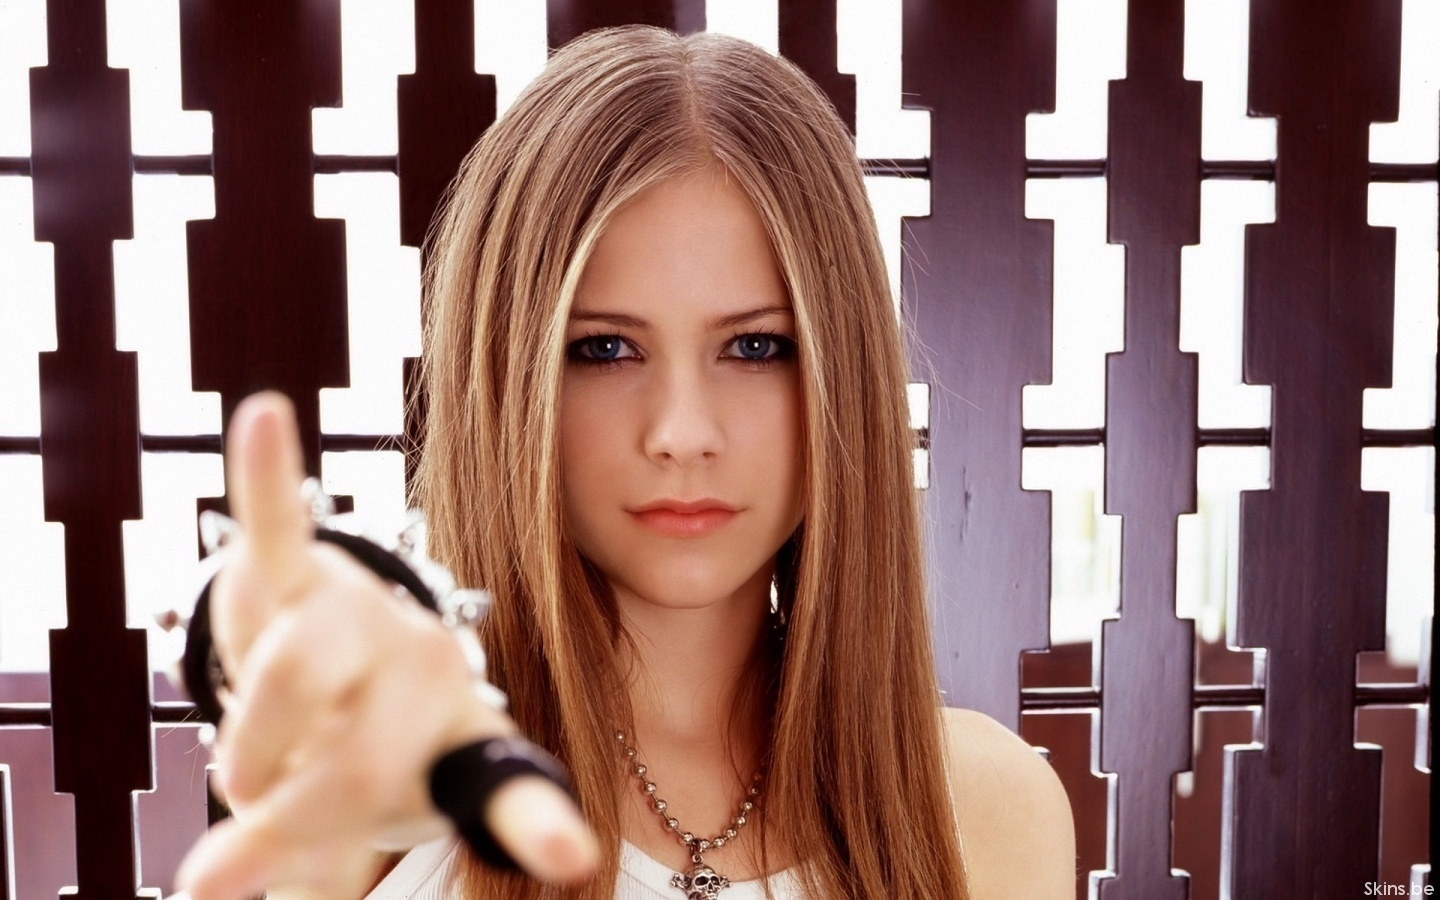 Music Images Avril Lavigne HD Wallpaper And Background Photos 9970969